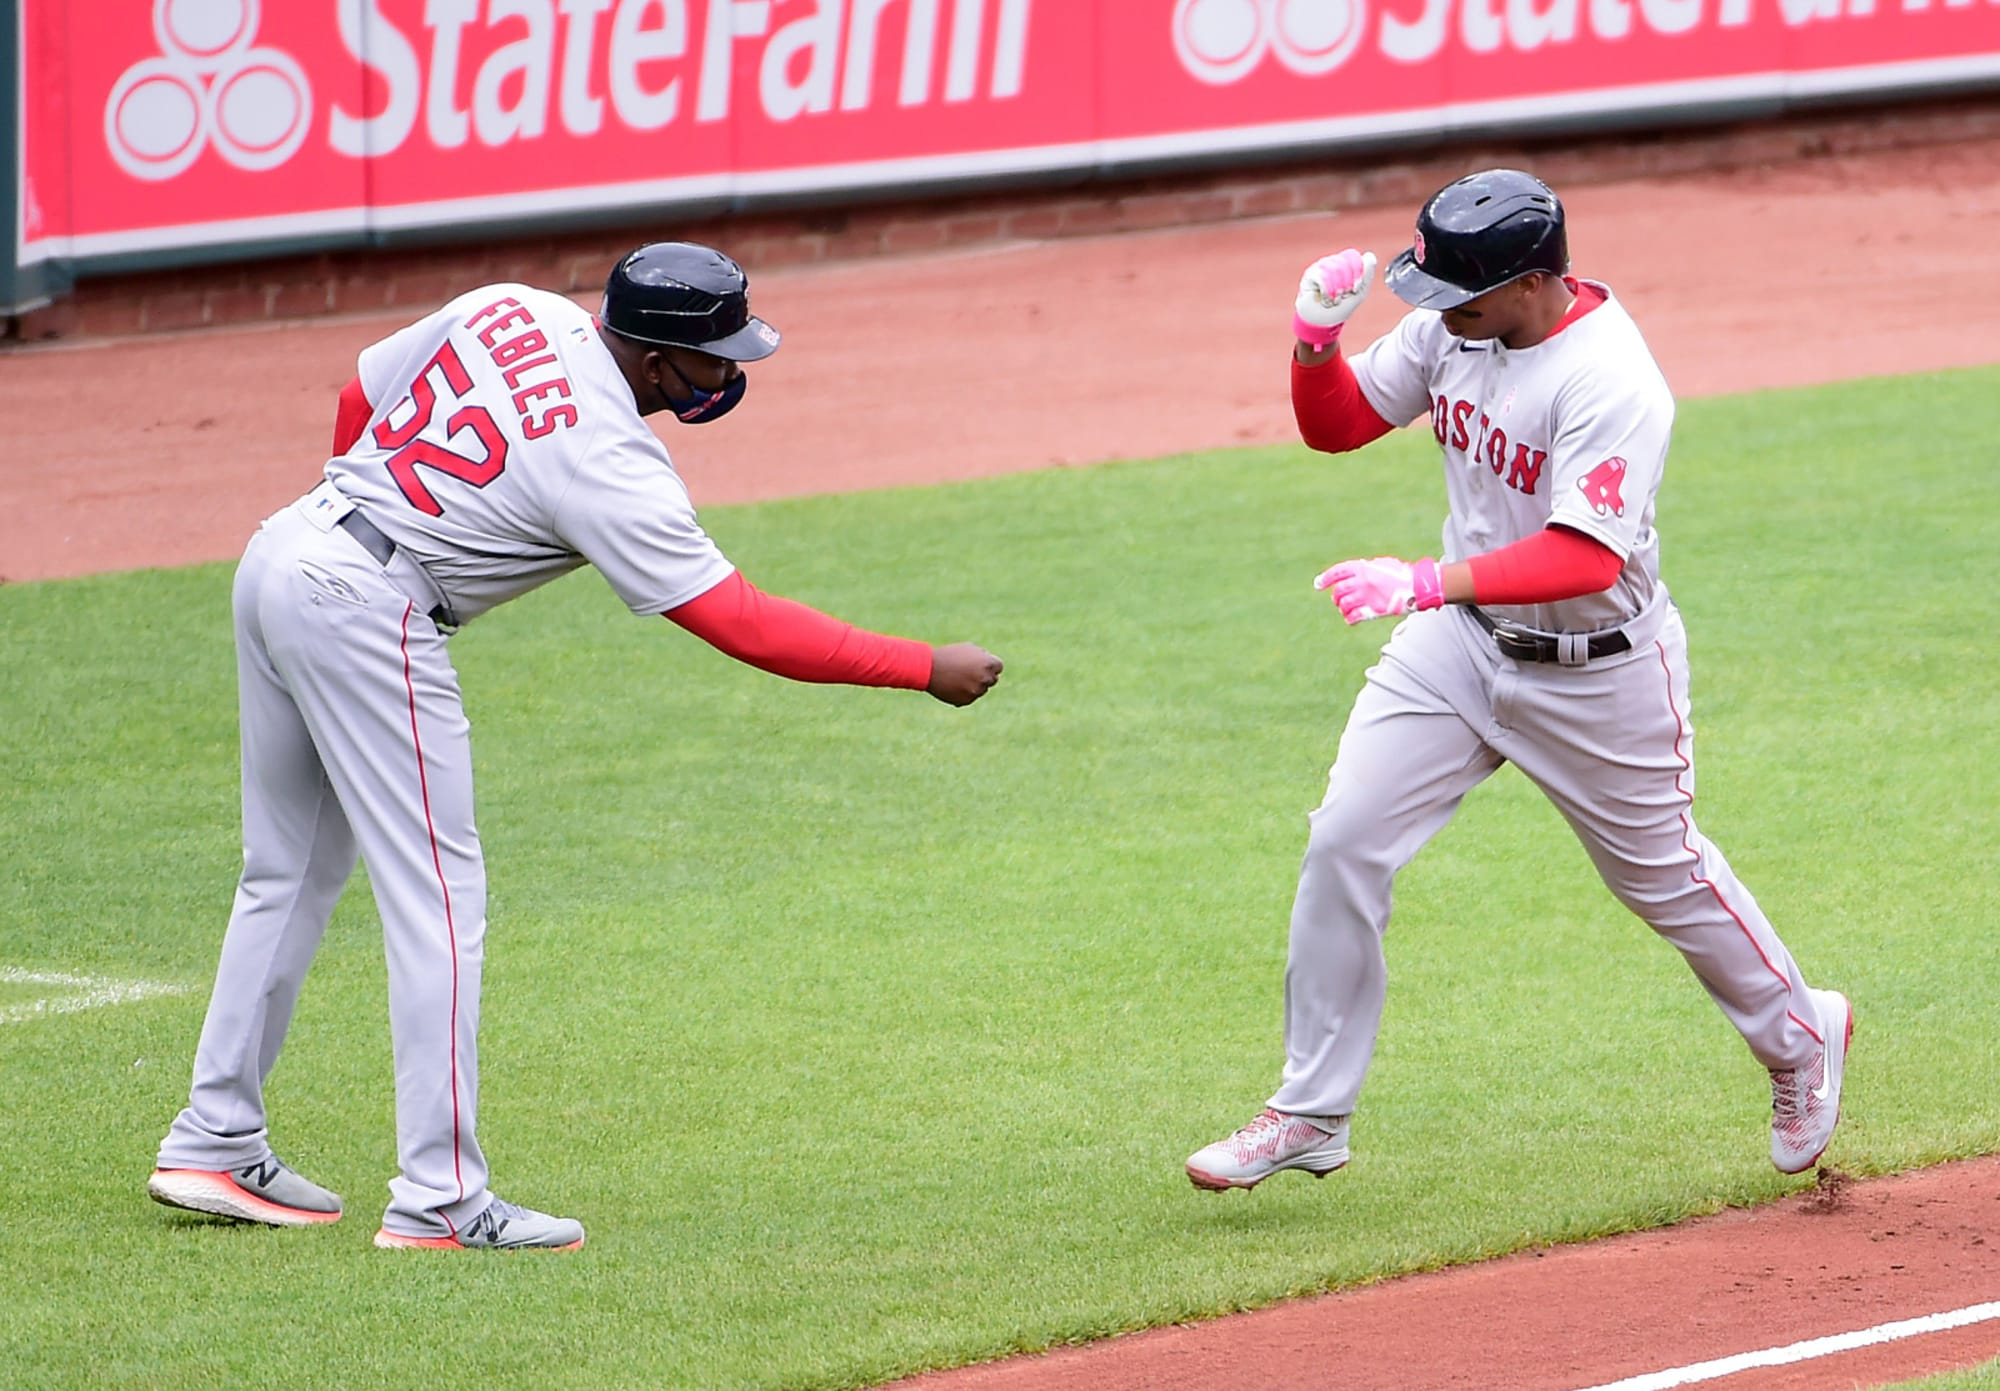 Boston Red Sox: Rafael Devers has complete faith in team